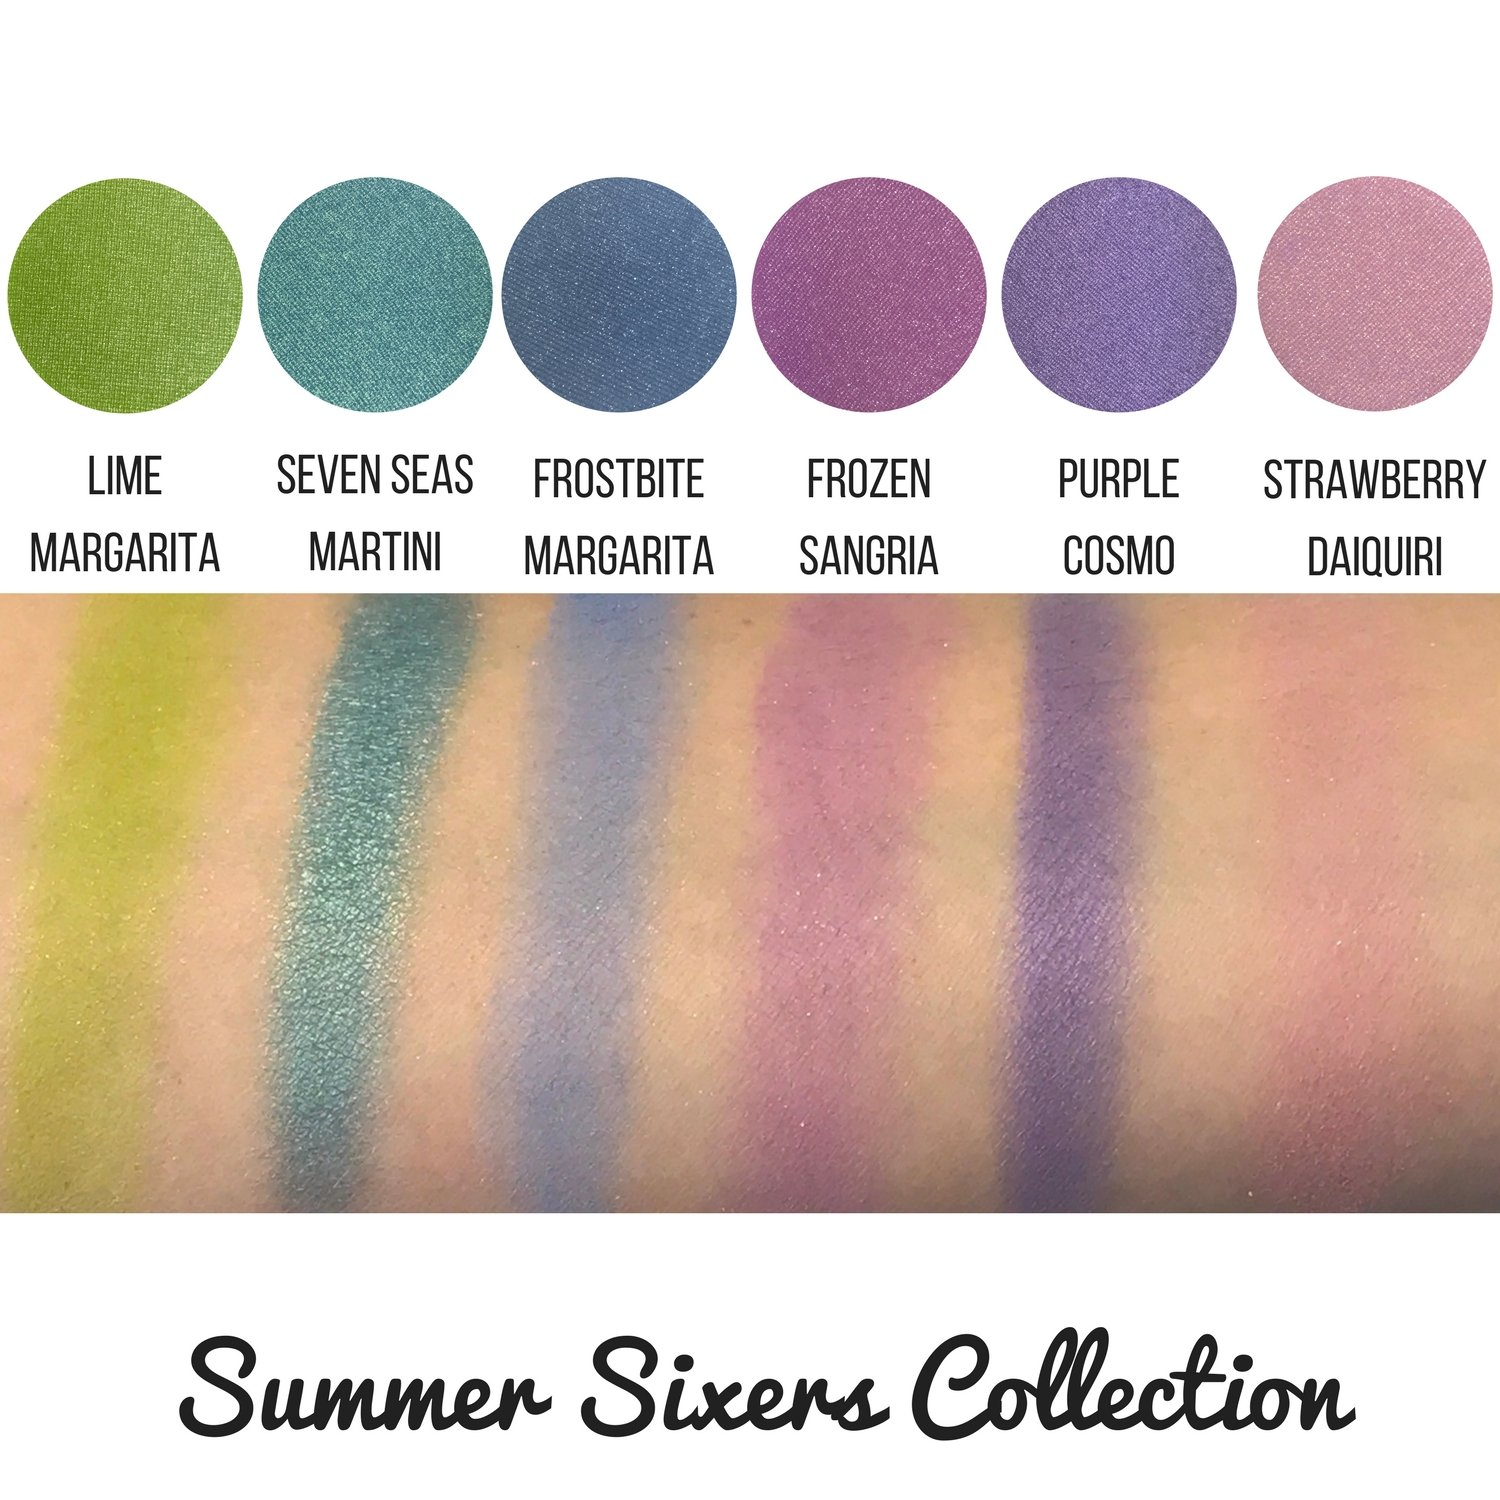 Summer Sixers Eyeshadow Quad Palette – 4 Highly Pigmented Single Powder Eye Shadow Pans, Magnetic Refill 26mm, Professional Quality Makeup, Paraben and Gluten Free, Cruelty Free Cosmetics Made in USA